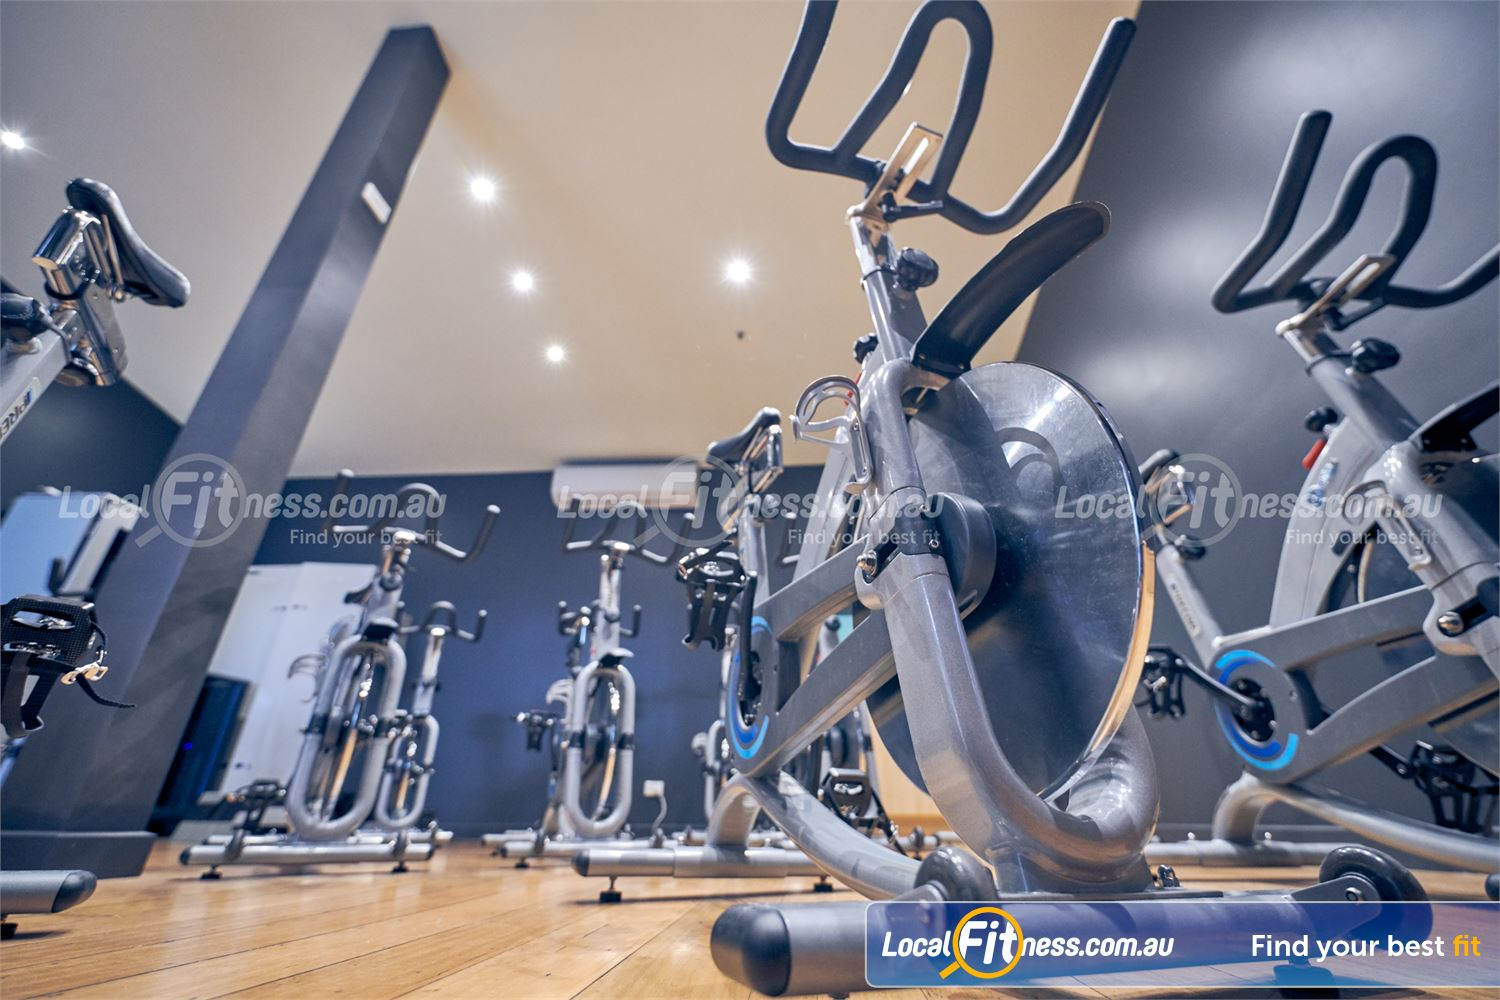 Fernwood Fitness Near Glen Iris The dedicated Camberwell spin cycle studio.